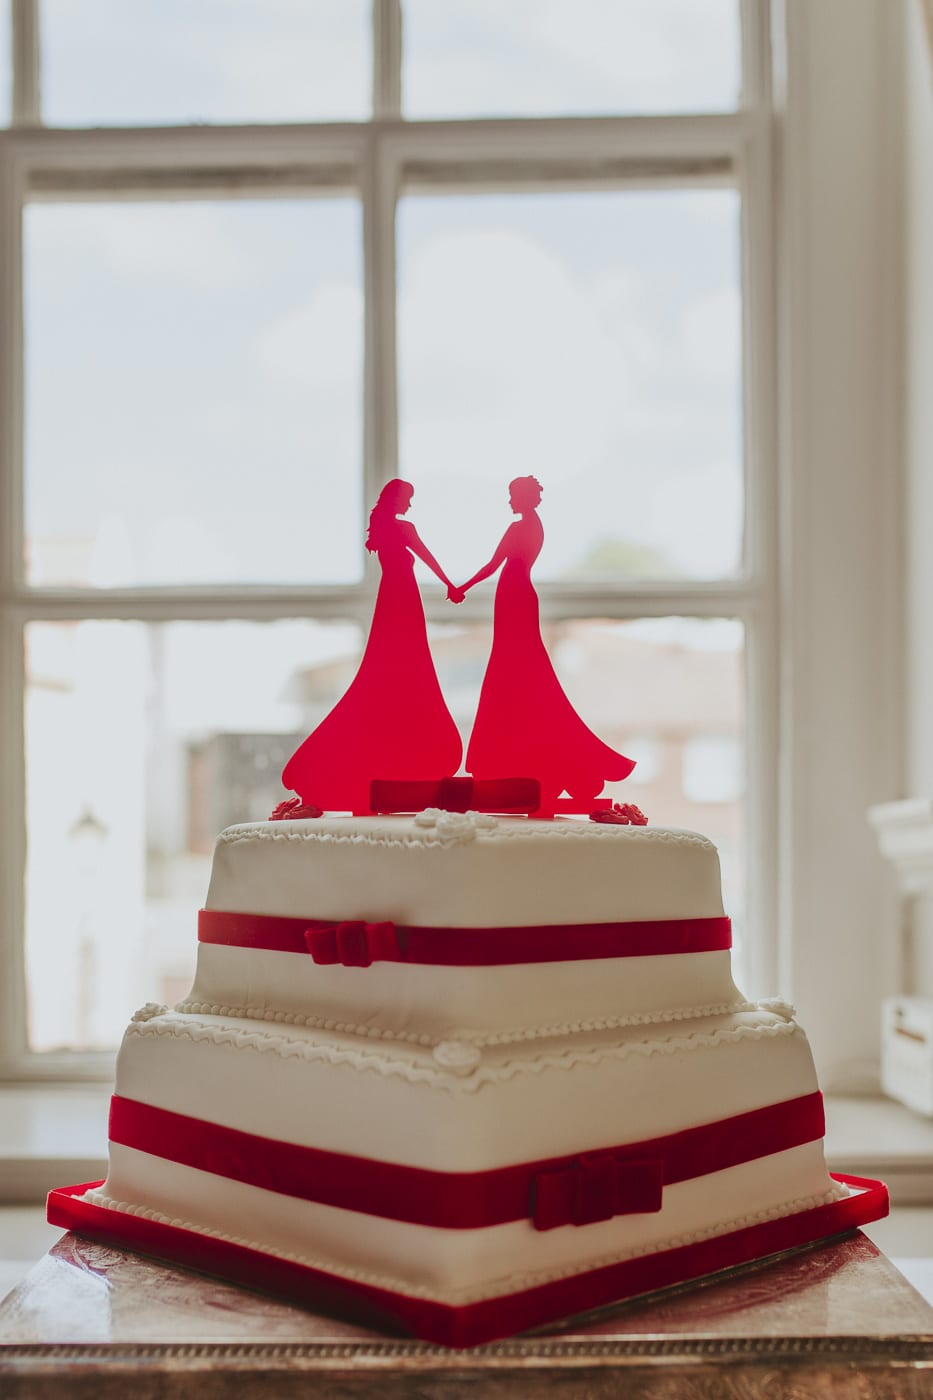 Red and white wedding cake for wedding by Joshua Wyborn photography